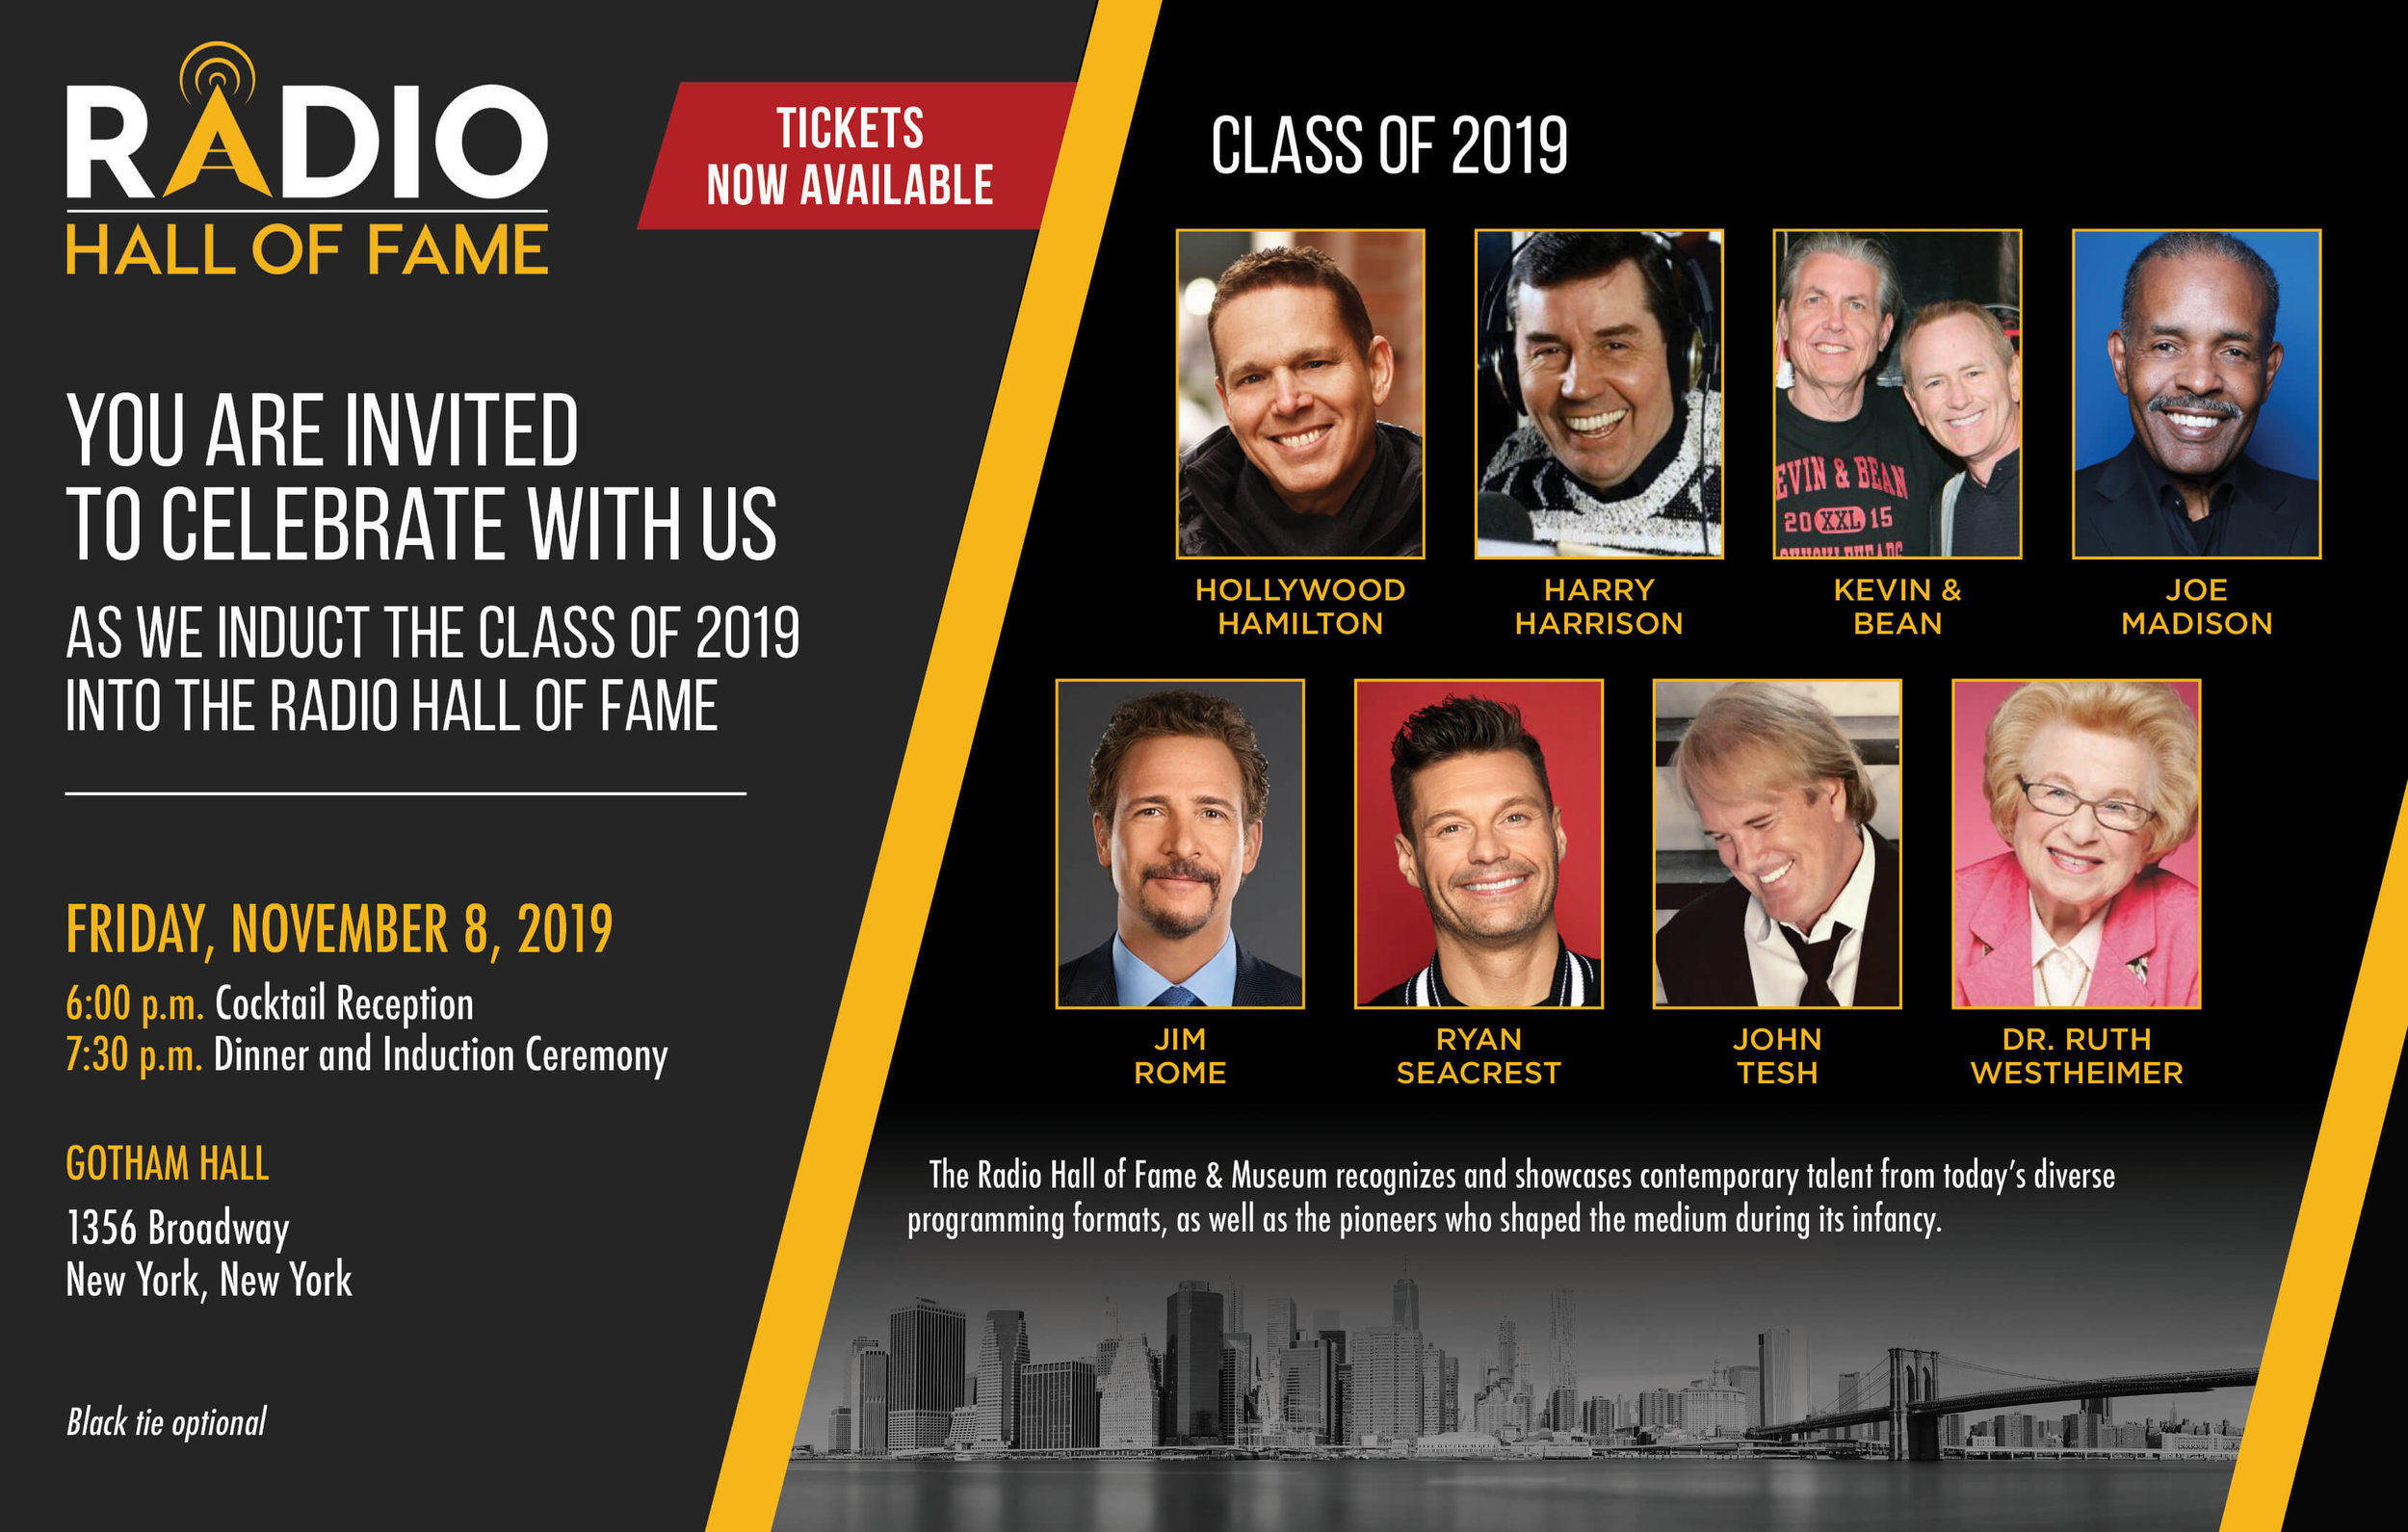 Ryan Seacrest to Be Inducted Into the Radio Hall of Fame